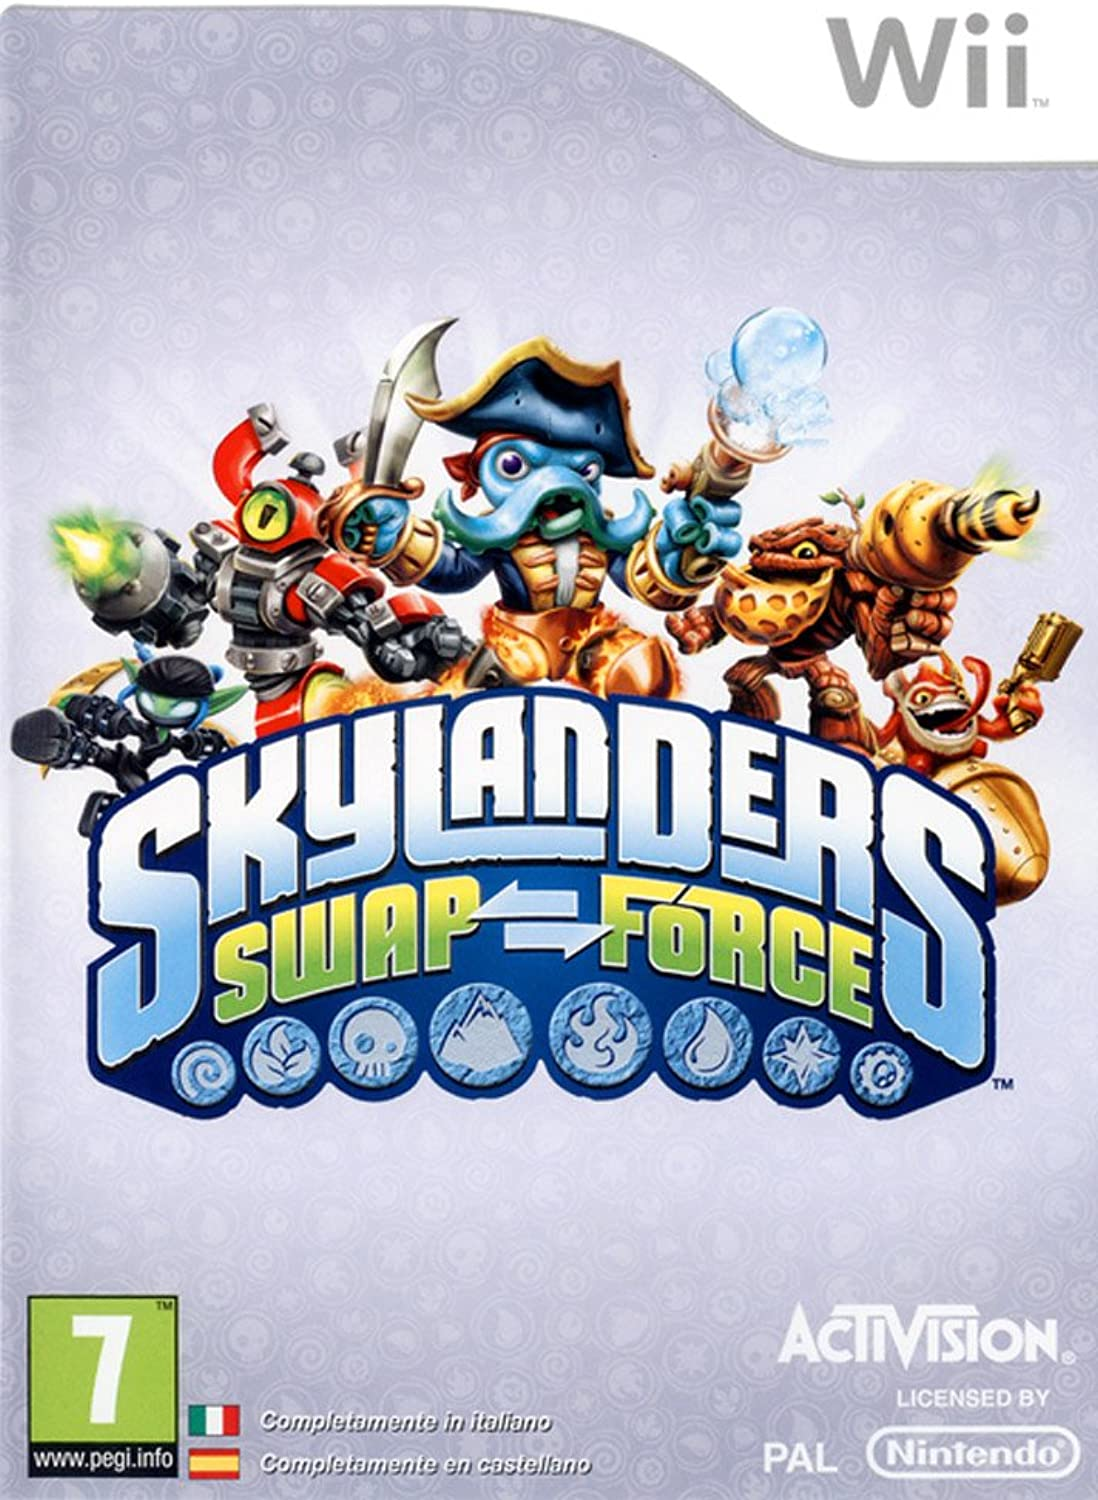 Wii Skylanders Swap Force (GAME ONLY) ONLY) ONLY) 3ef37a - qyreq